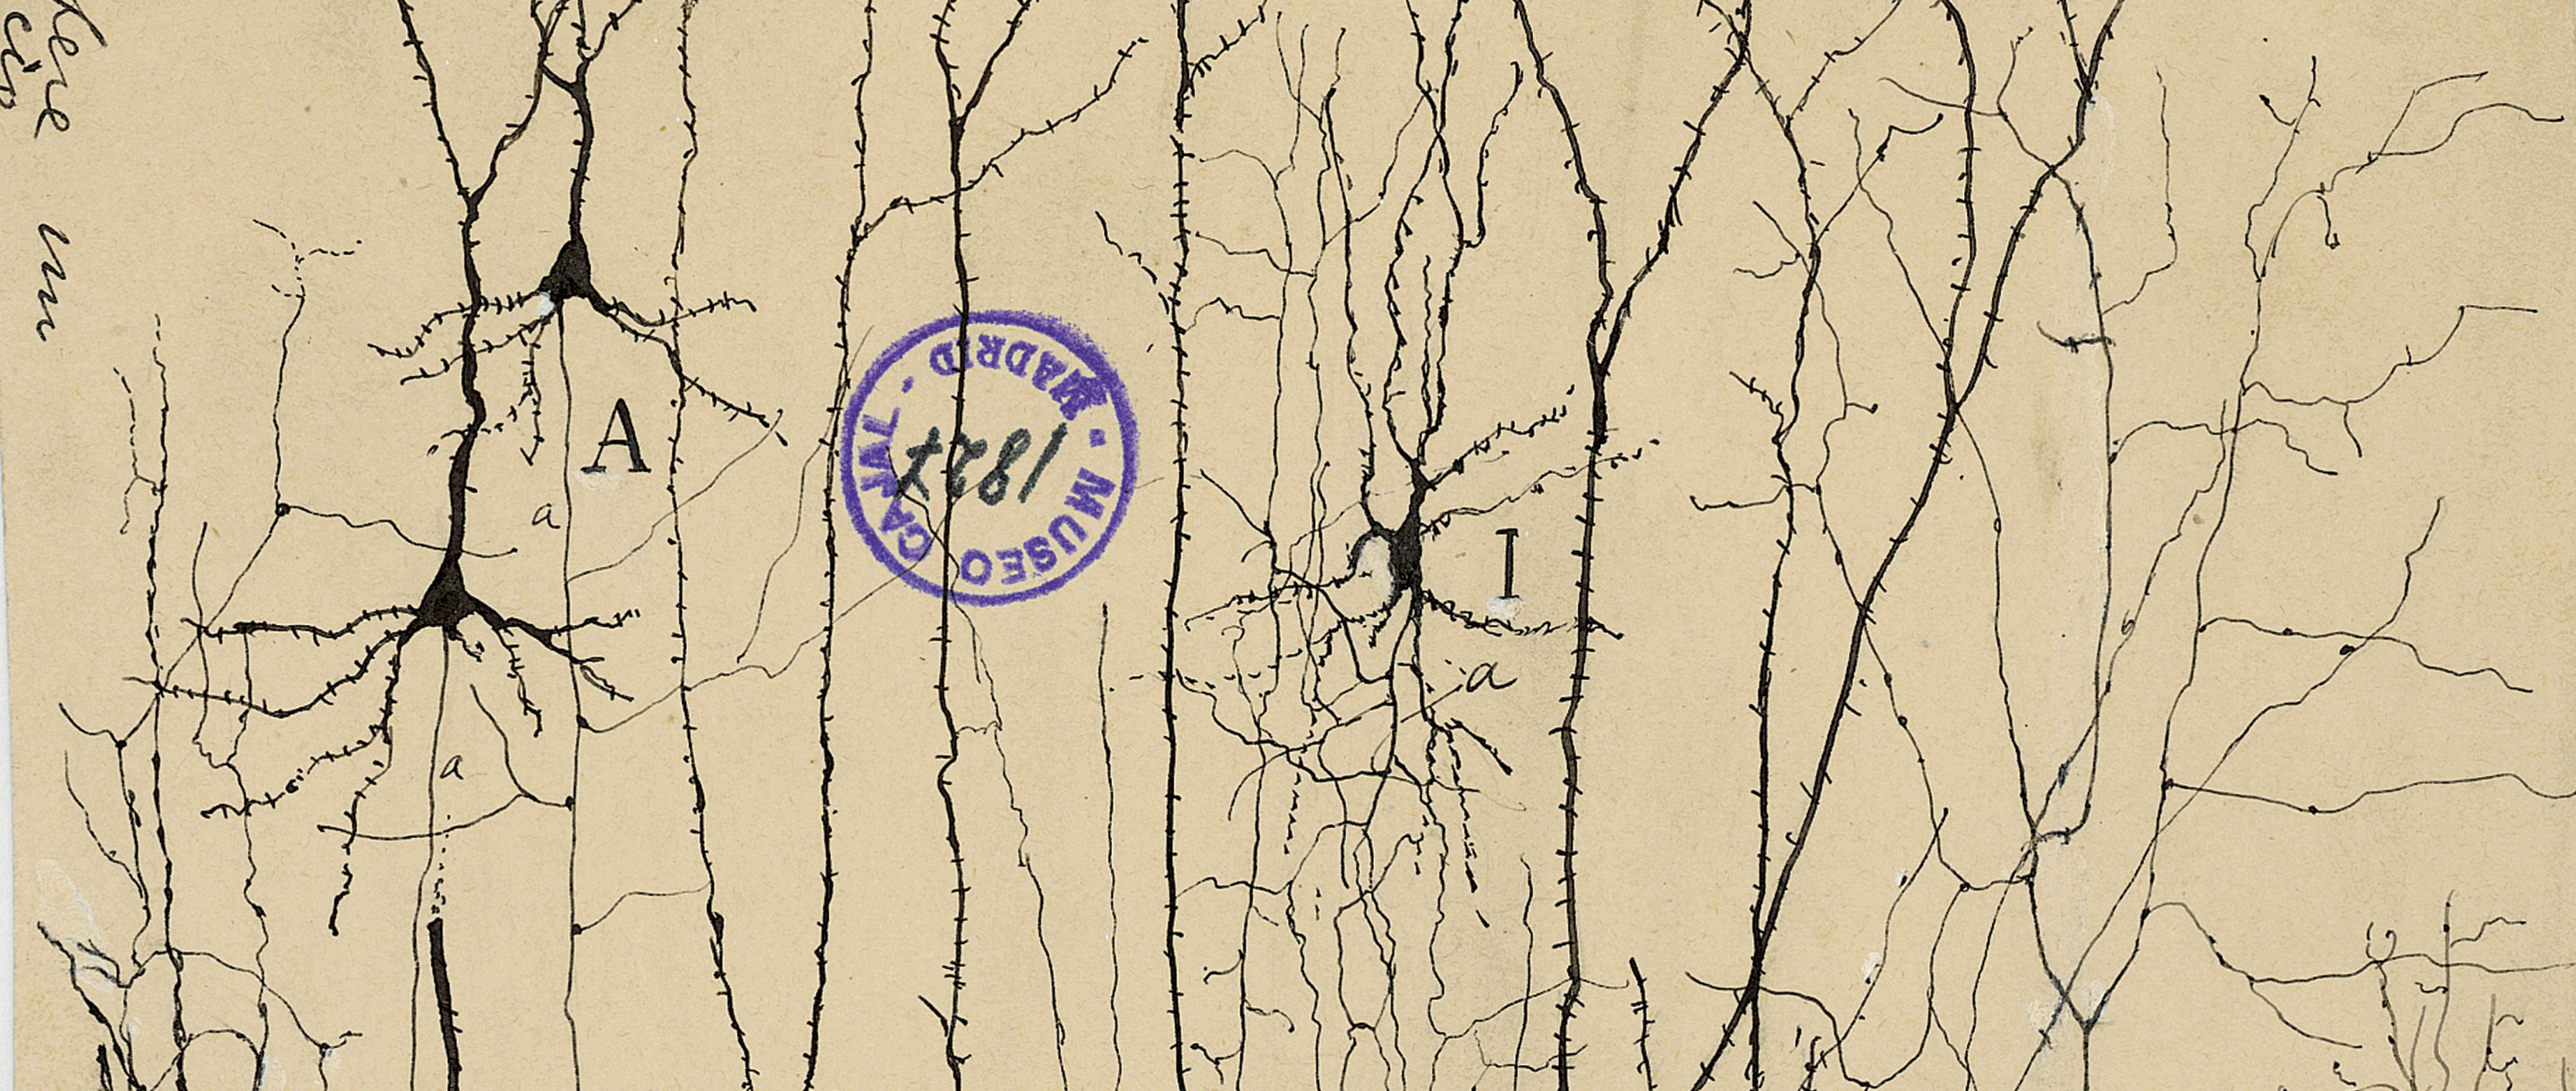 Neuron drawings by Santiago Ramón y Cajal